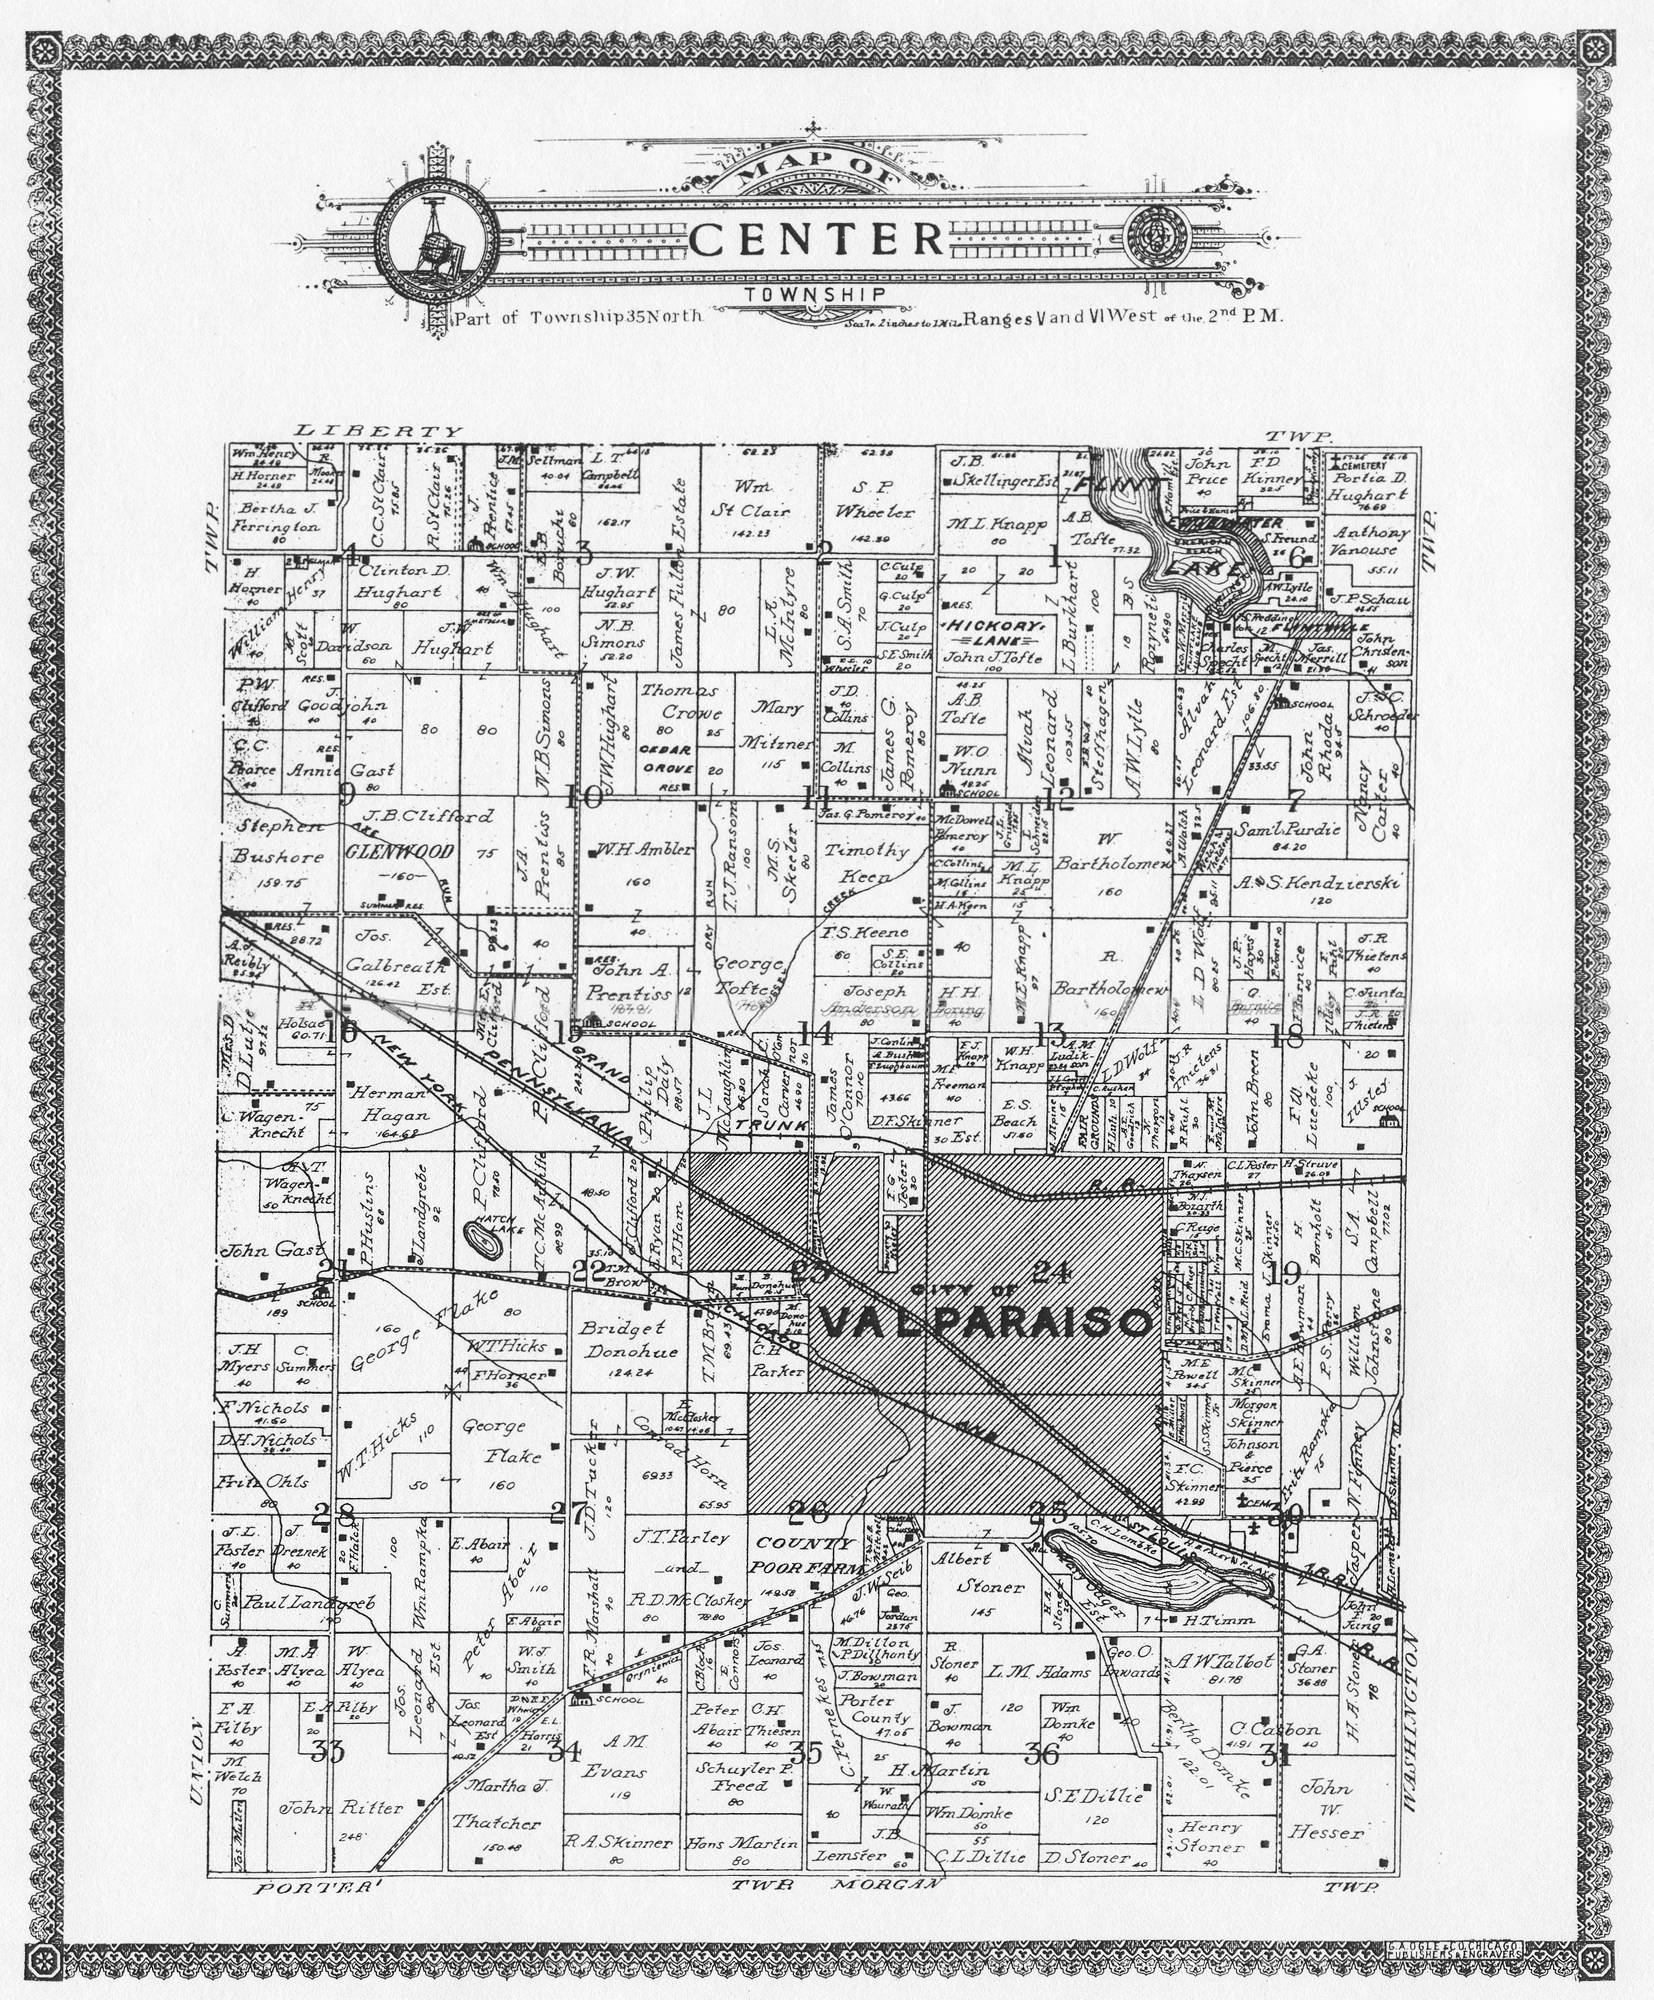 Porter County Indiana Genweb Township Plat Maps 1906